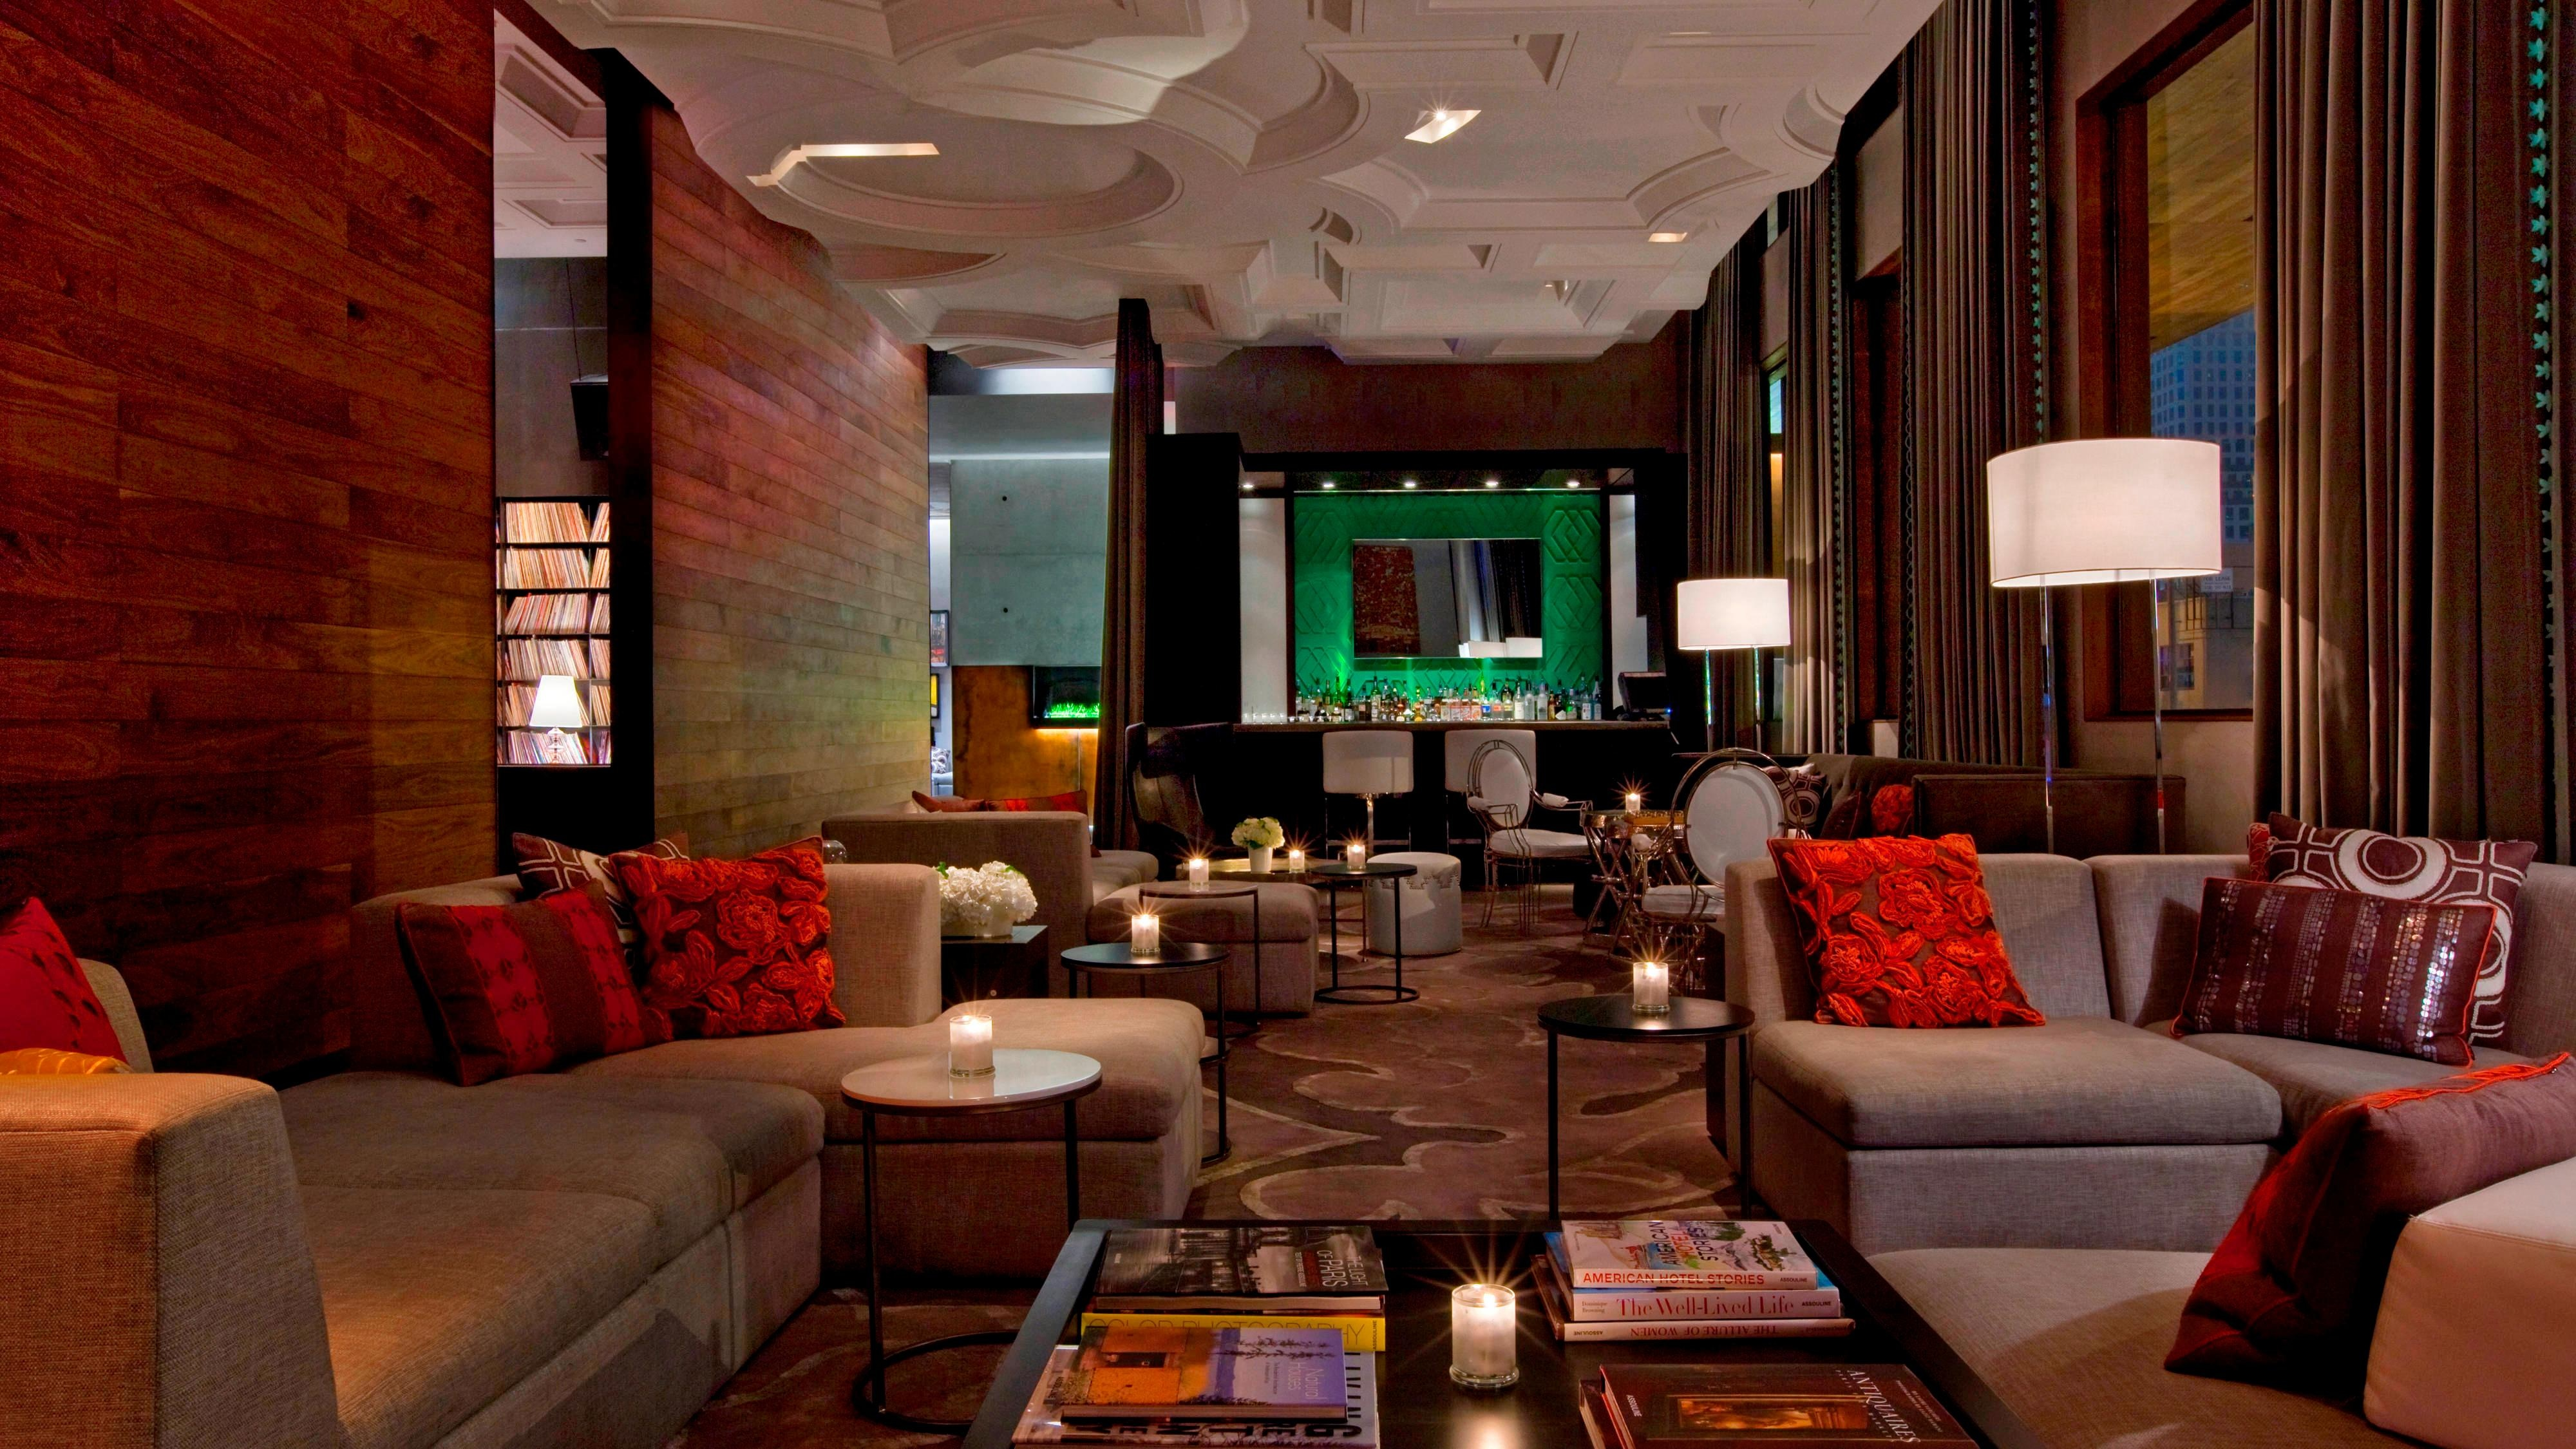 living room theater drink menu small couches hotels in austin tx w tequila bar view